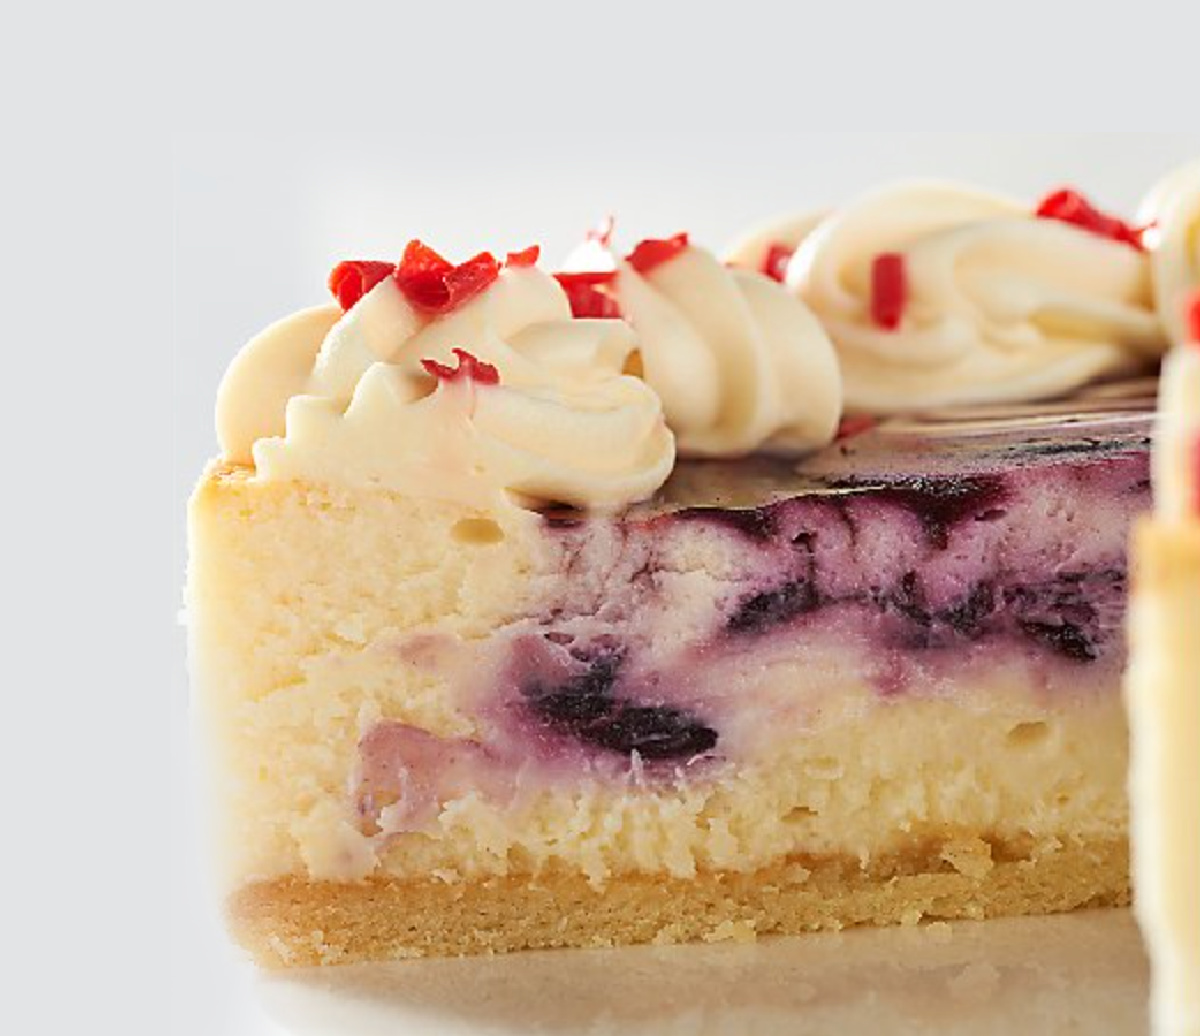 inside piece of a New York cheesecake with blueberry puree swirl